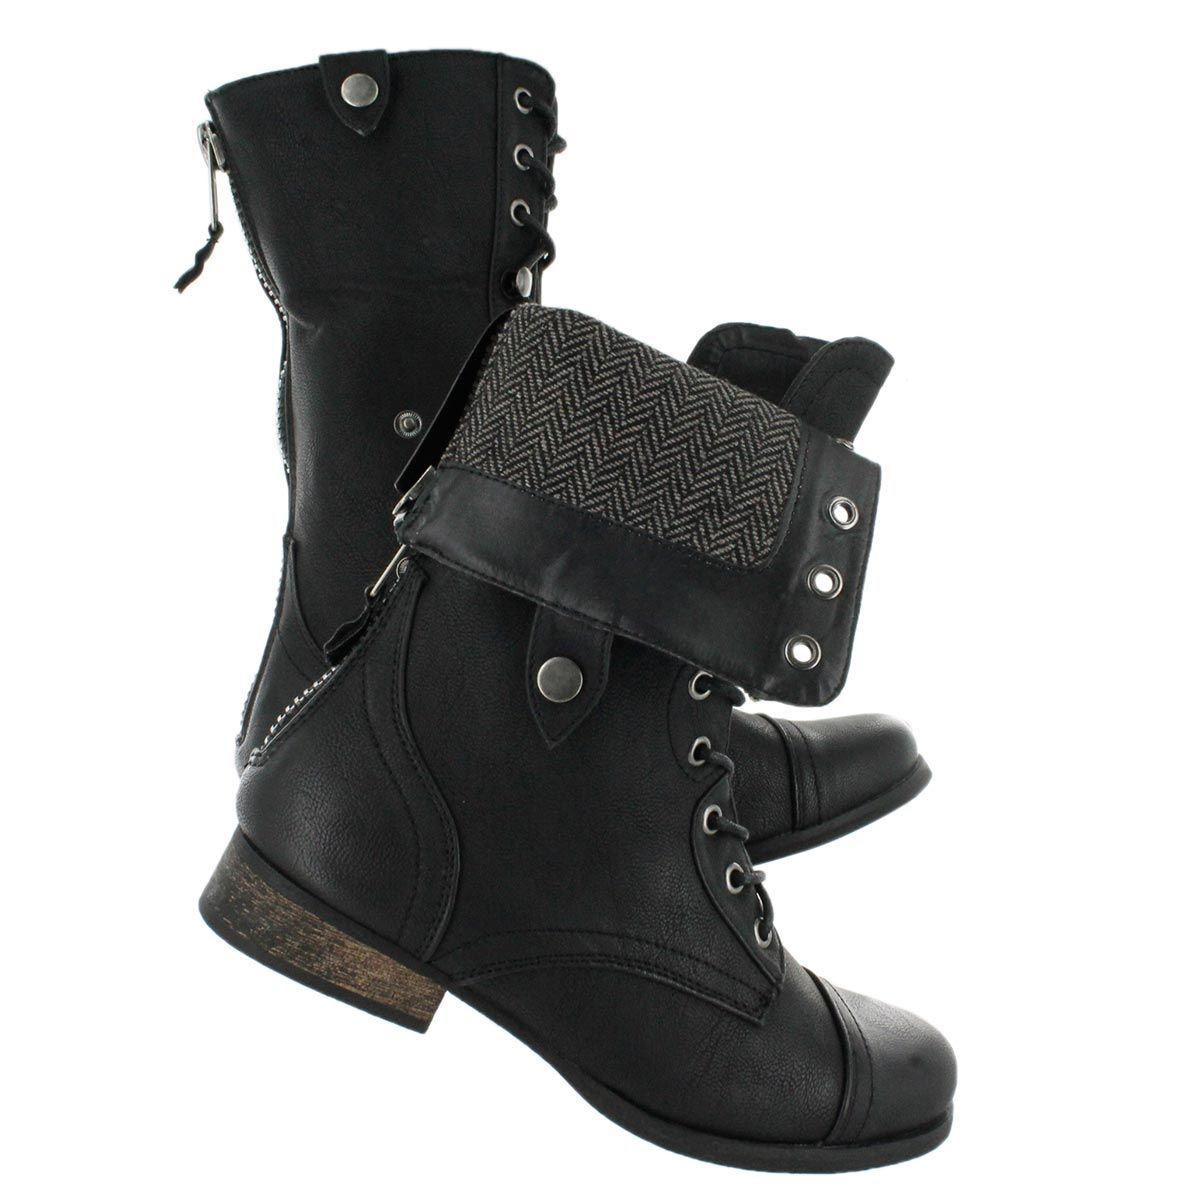 BIANCA 2 black fold over combat boots $109.99 | Shoes | Pinterest ...